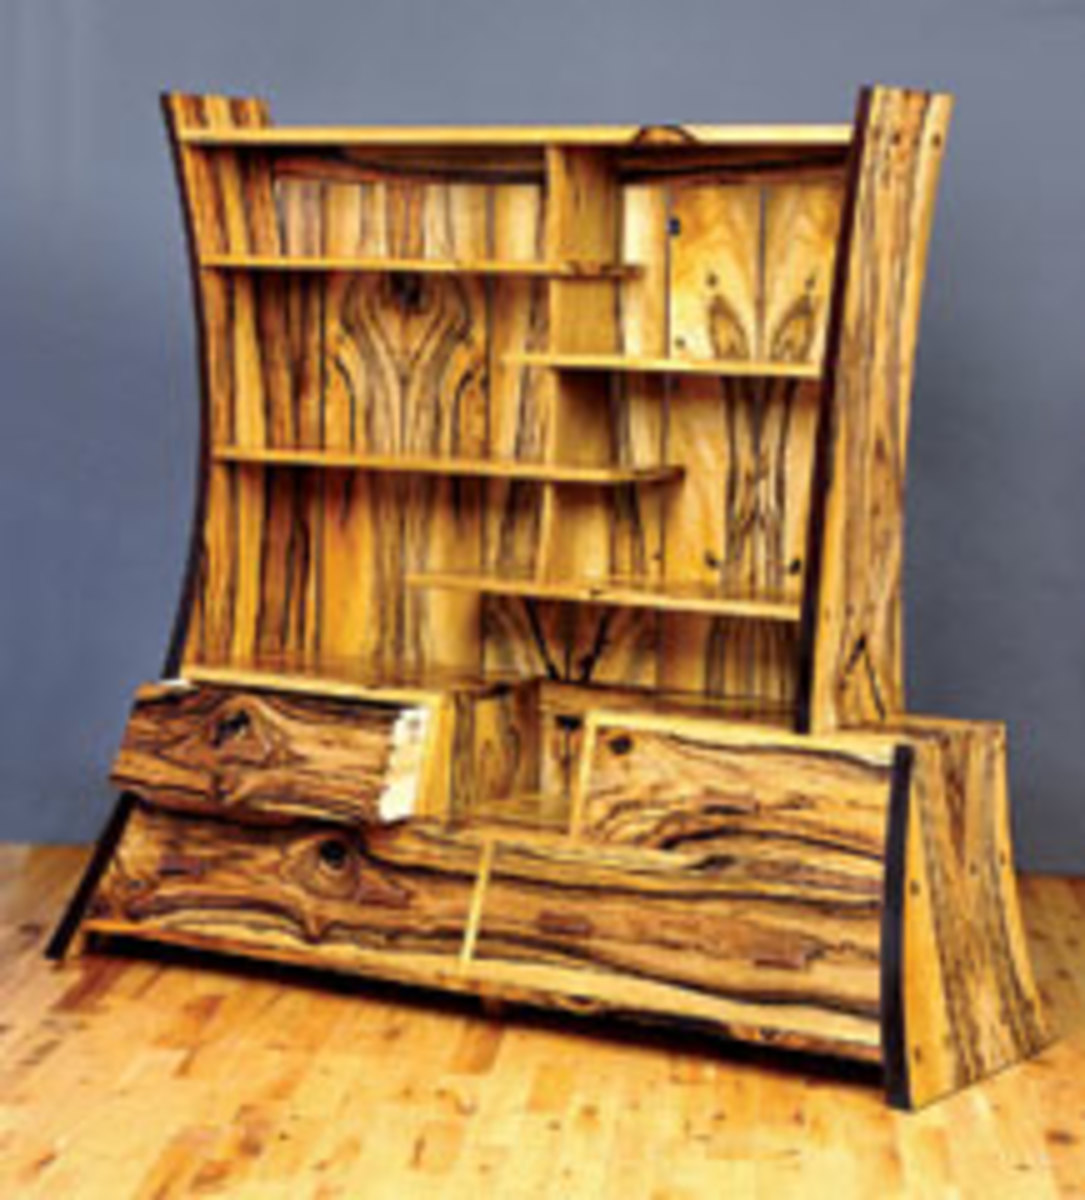 Pitt's portfolio includes this four-drawer cabinet made from persimmon, featuring bent-laminated sides.